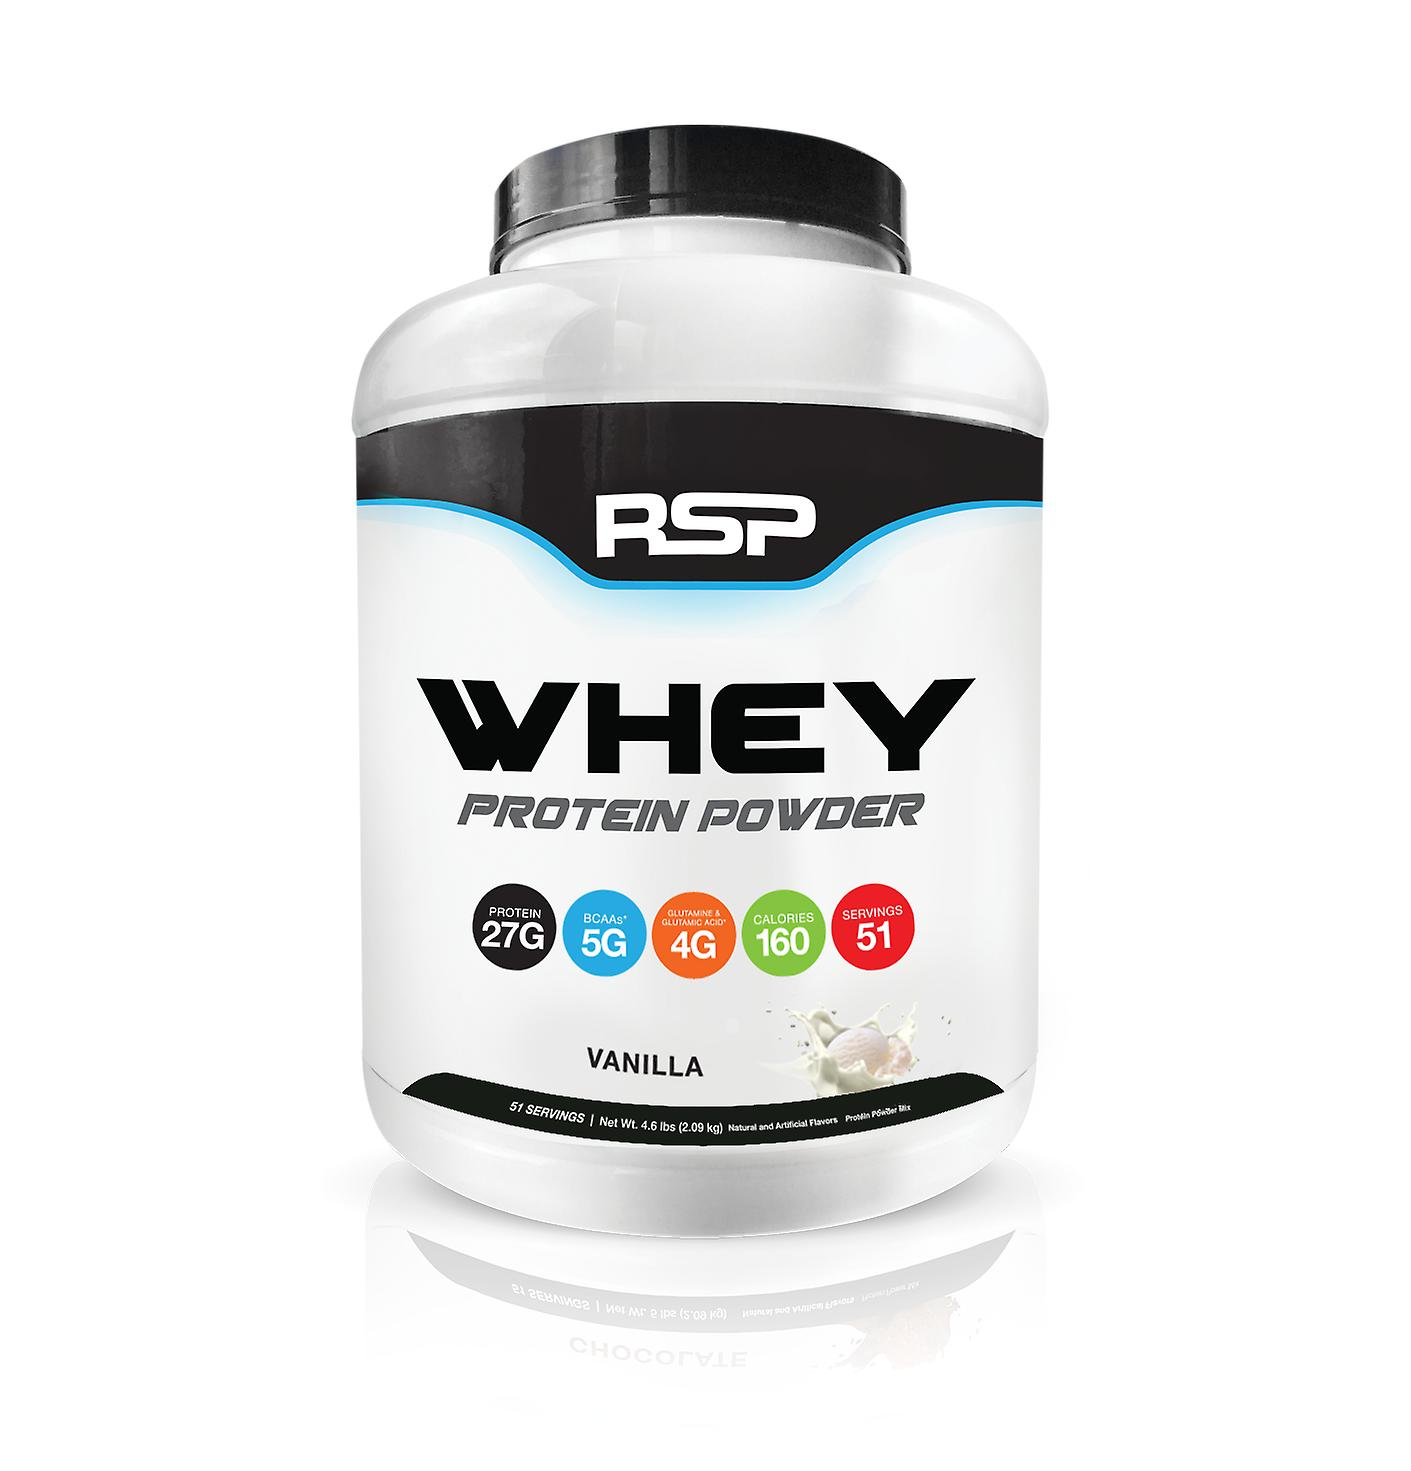 Rsp whey protein powder - 27g premium whey protein shake with bcaas and glutamine, post workout recovery protein supplement, 51 servings